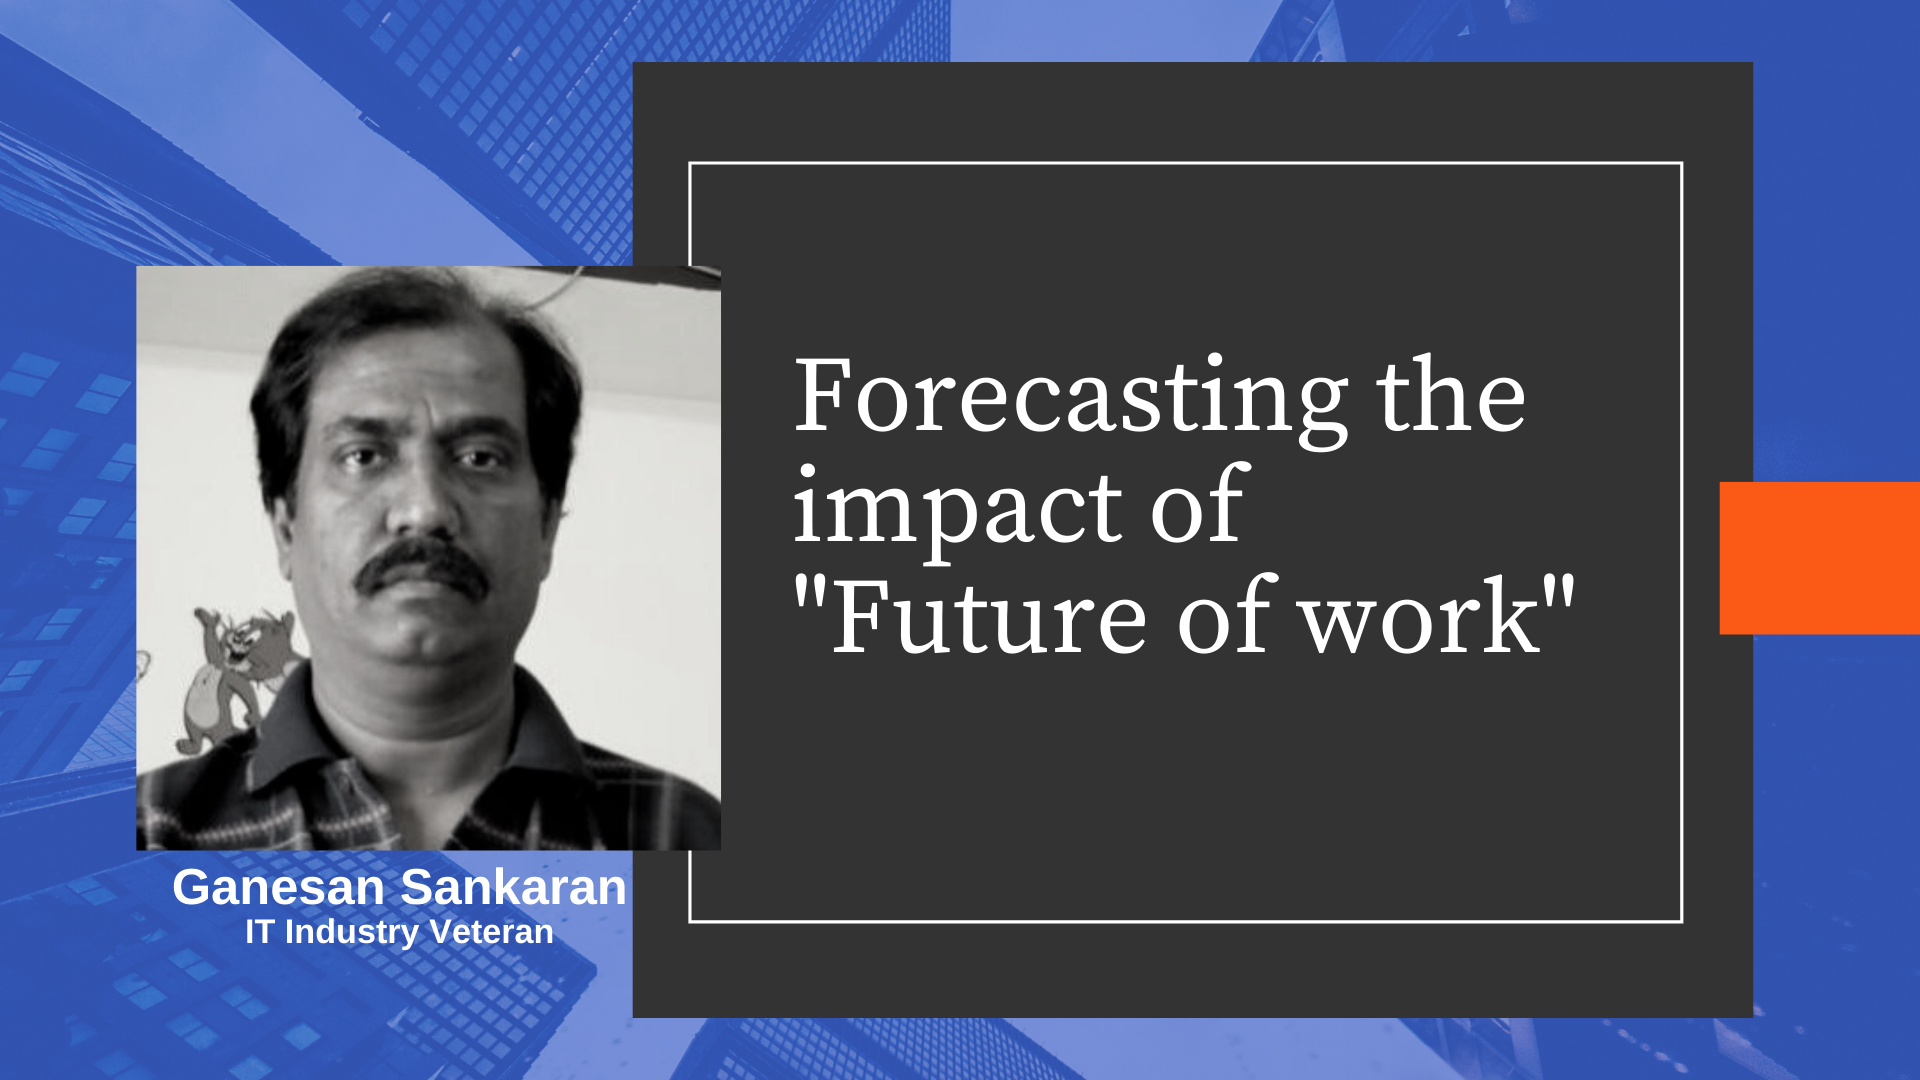 Interview with Ganesan Sankaran - His views on technology and Future of Work